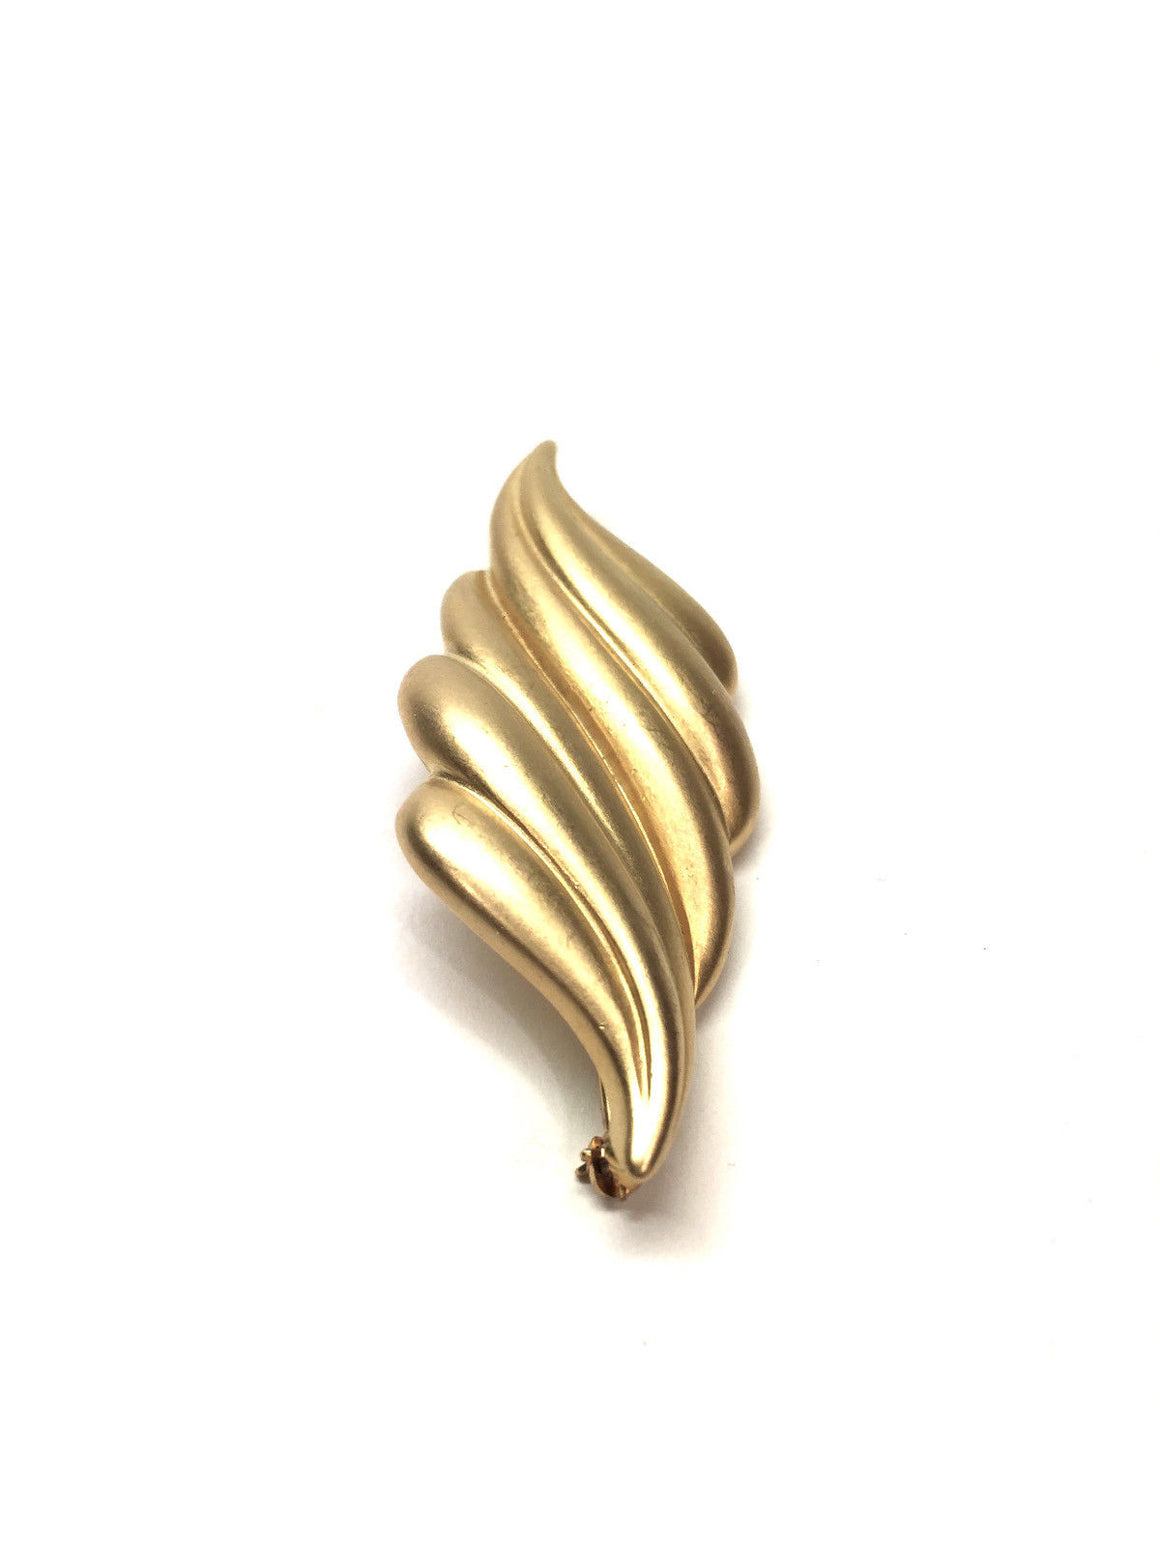 bisbiz.com ERWIN PEARL Opaque Gold-Tone Swirled Double Leaf Pin/Brooch - Bis Designer Resale